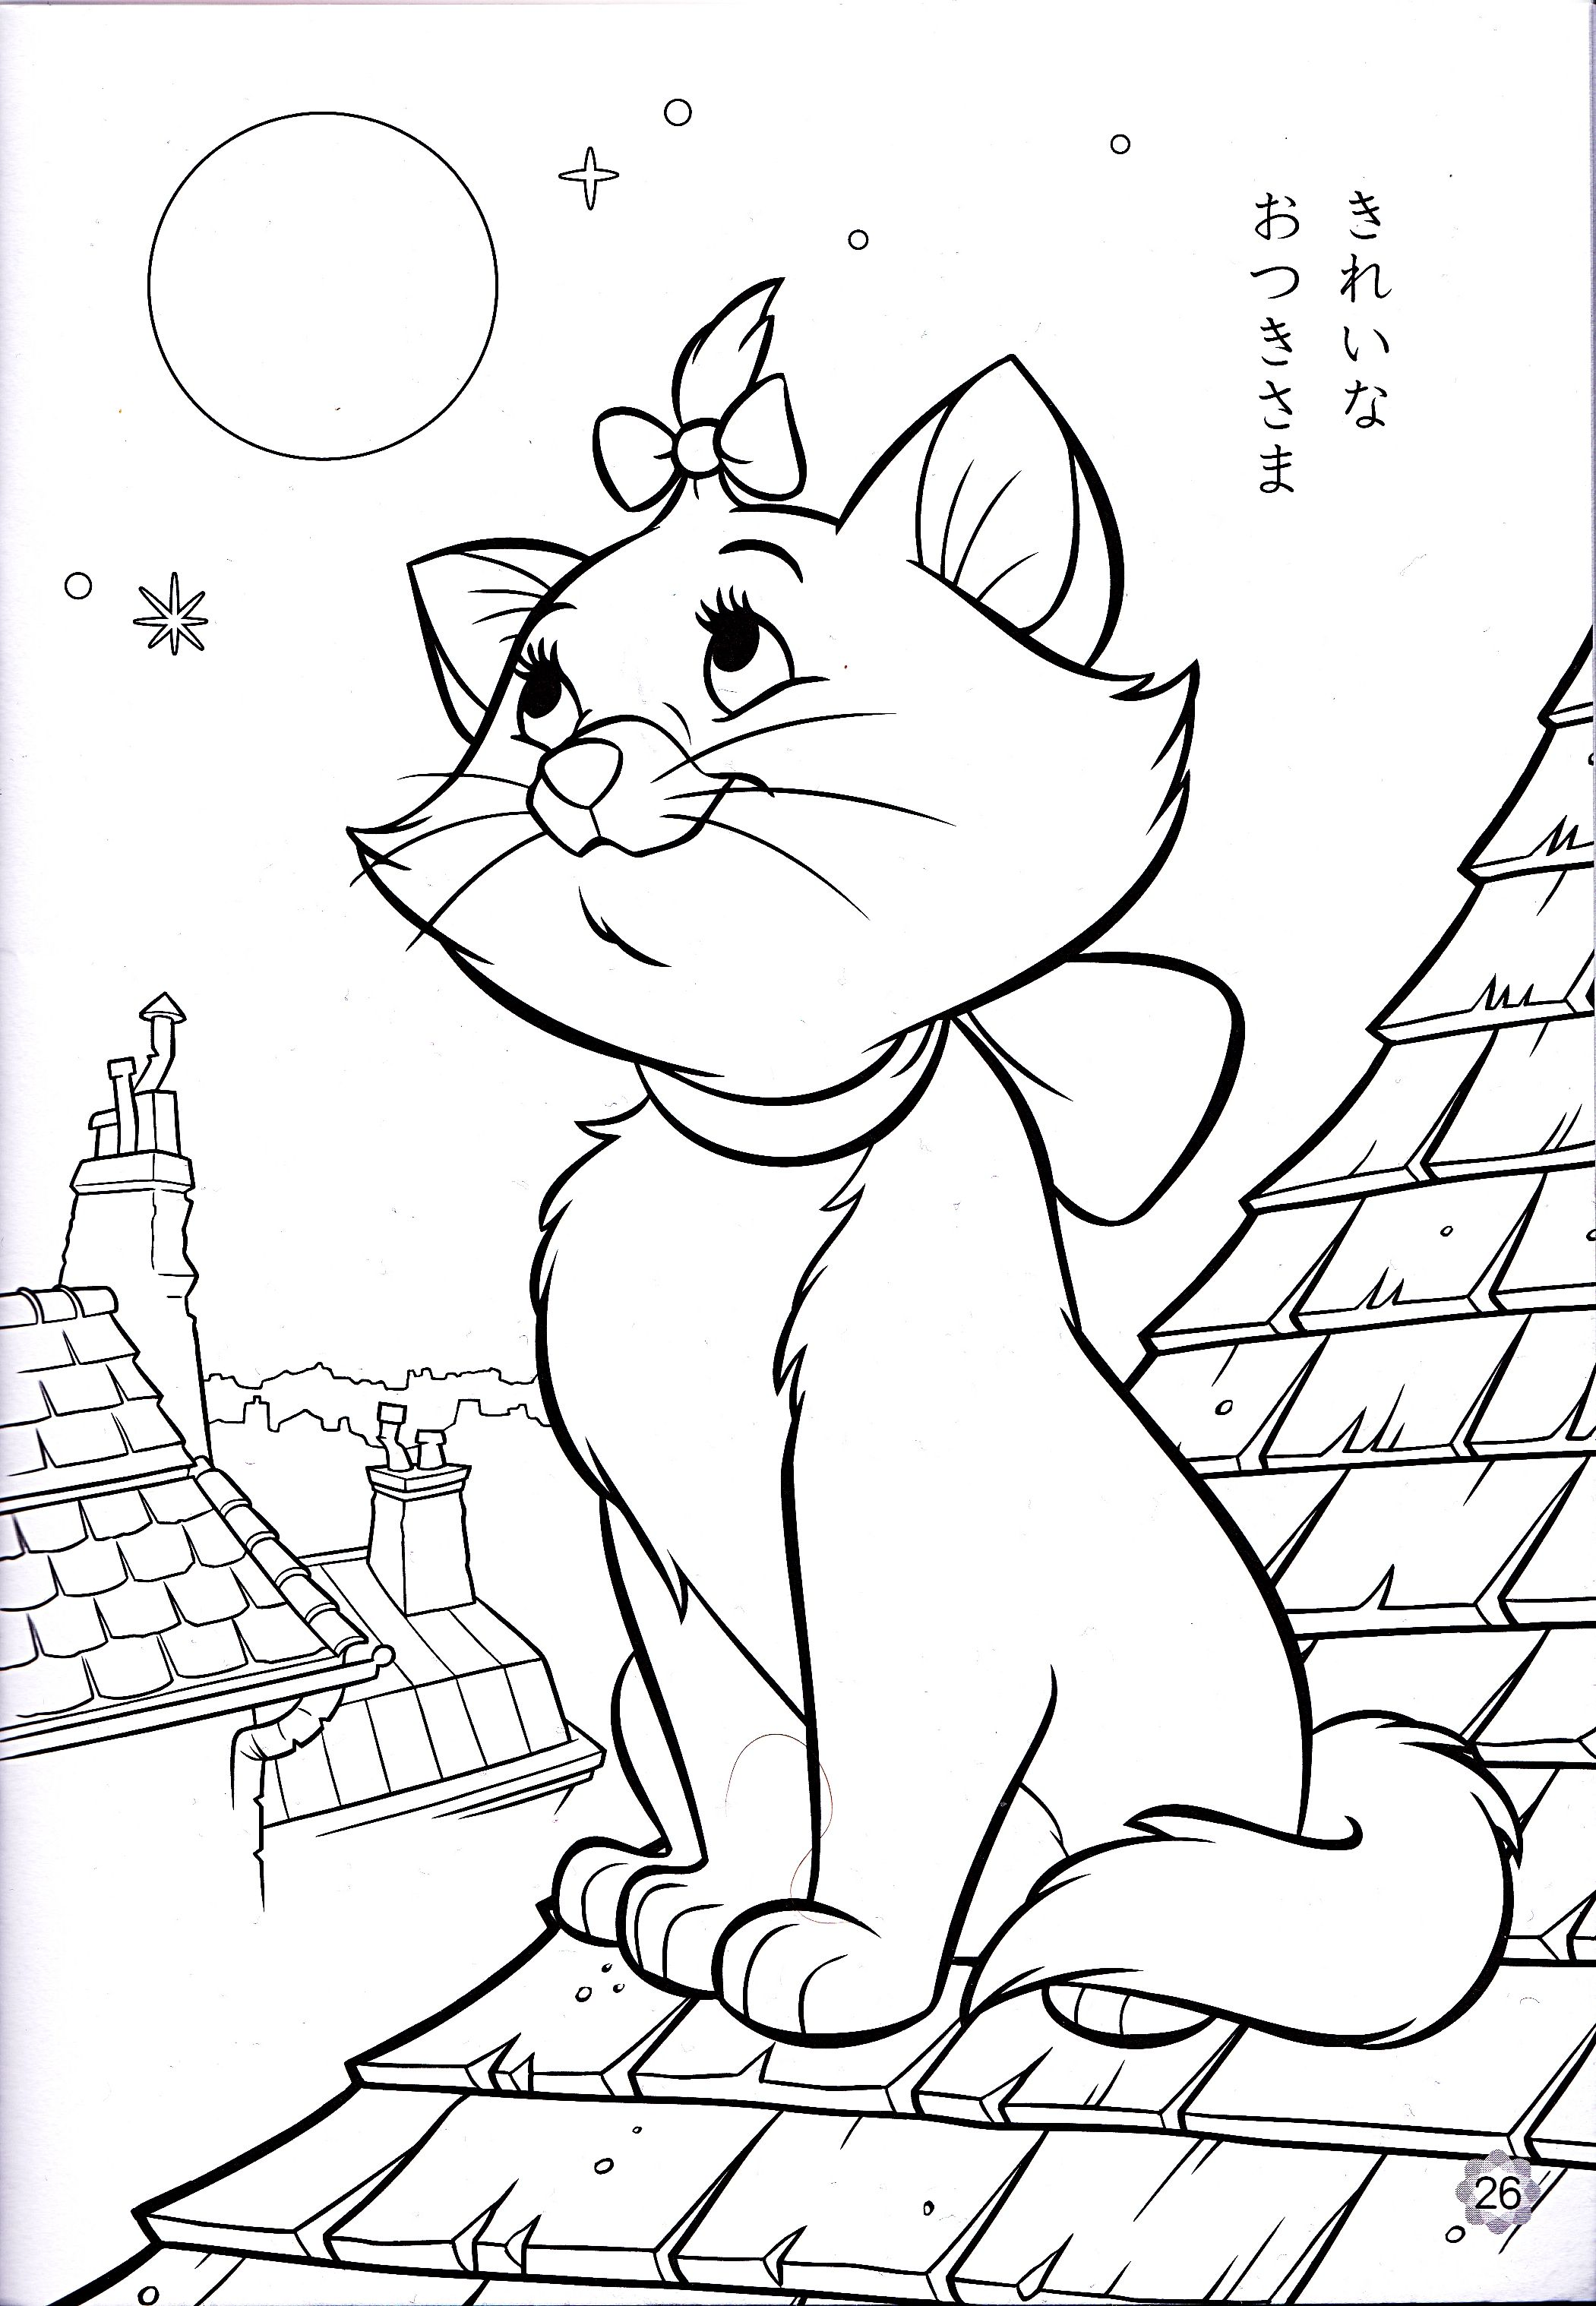 Disney coloring pages adults - Walt Disney Coloring Pages Marie Walt Disney Characters Photo